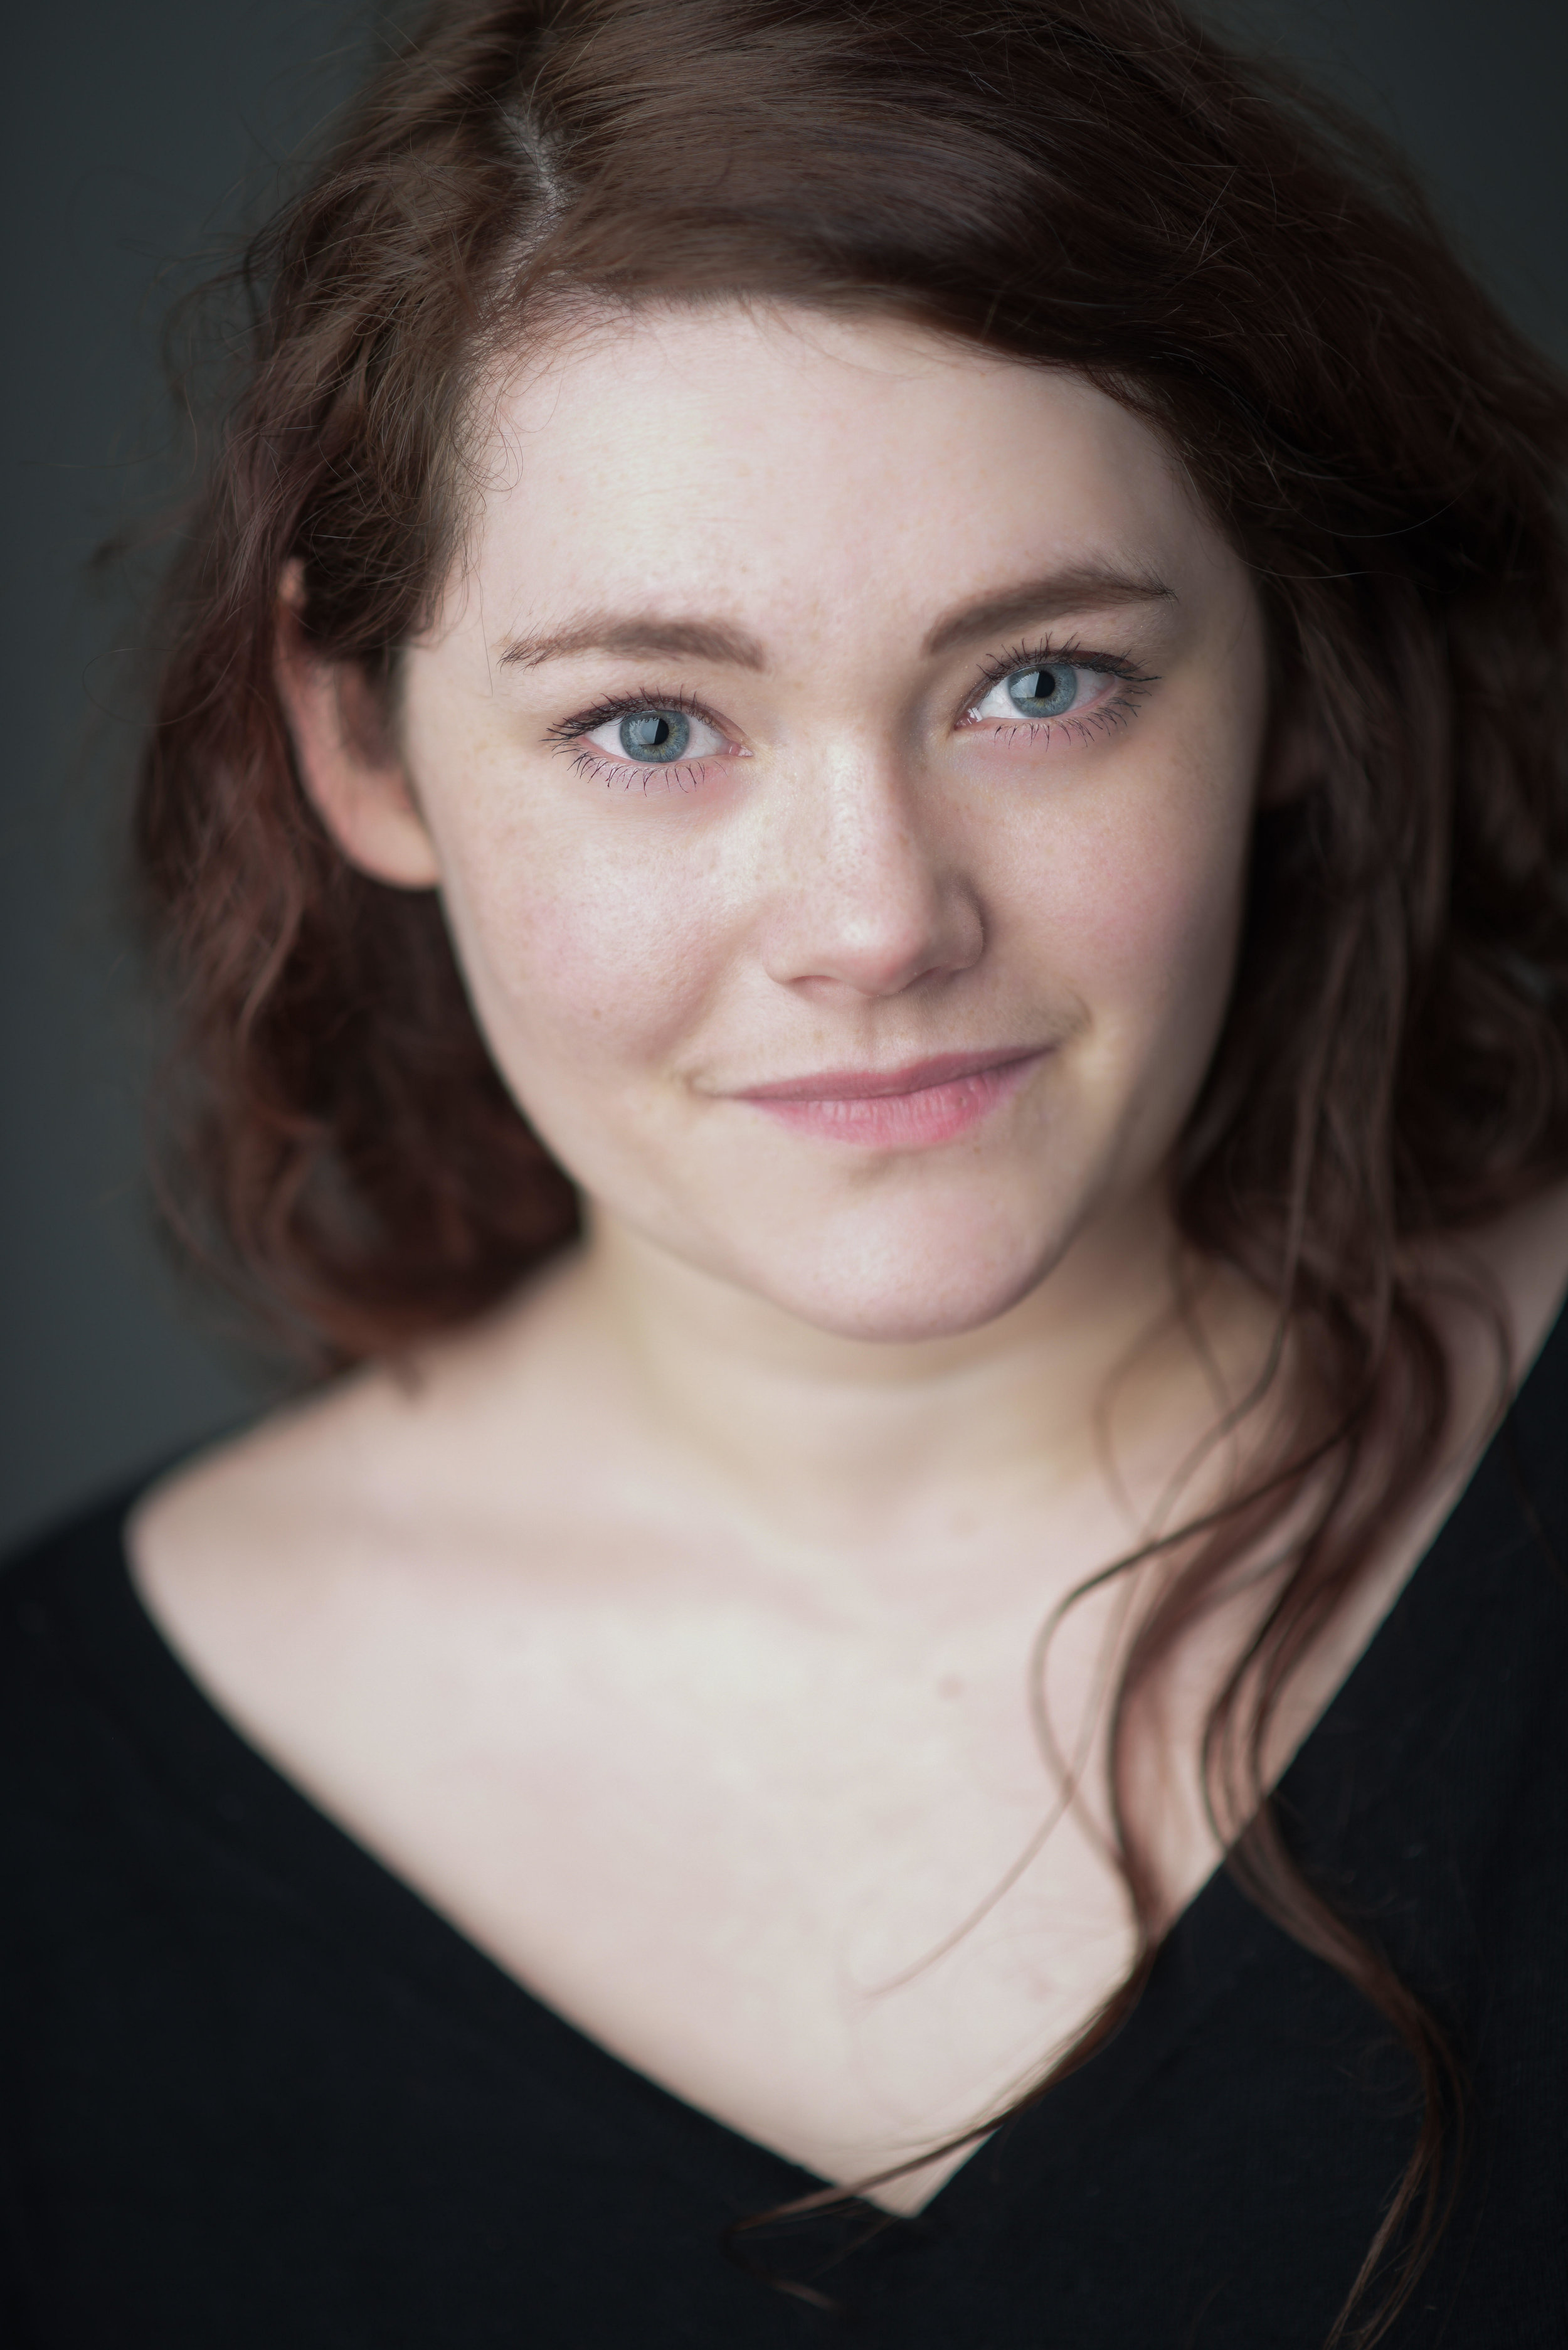 Madeline Gould is a playwright whose passions include creating high-quality drama for the rural touring circuit. Notable Credits: Ladykiller - sell-out, award-winning runs at Edinburgh Fringe 2018, VAULT Festival 2019; It Is Now -Most requested piece ever in the history of 'Live and Local' (rural touring scheme covering seven counties). Madeline is currently working on her first script for television with the producer of acclaimed series This Country.